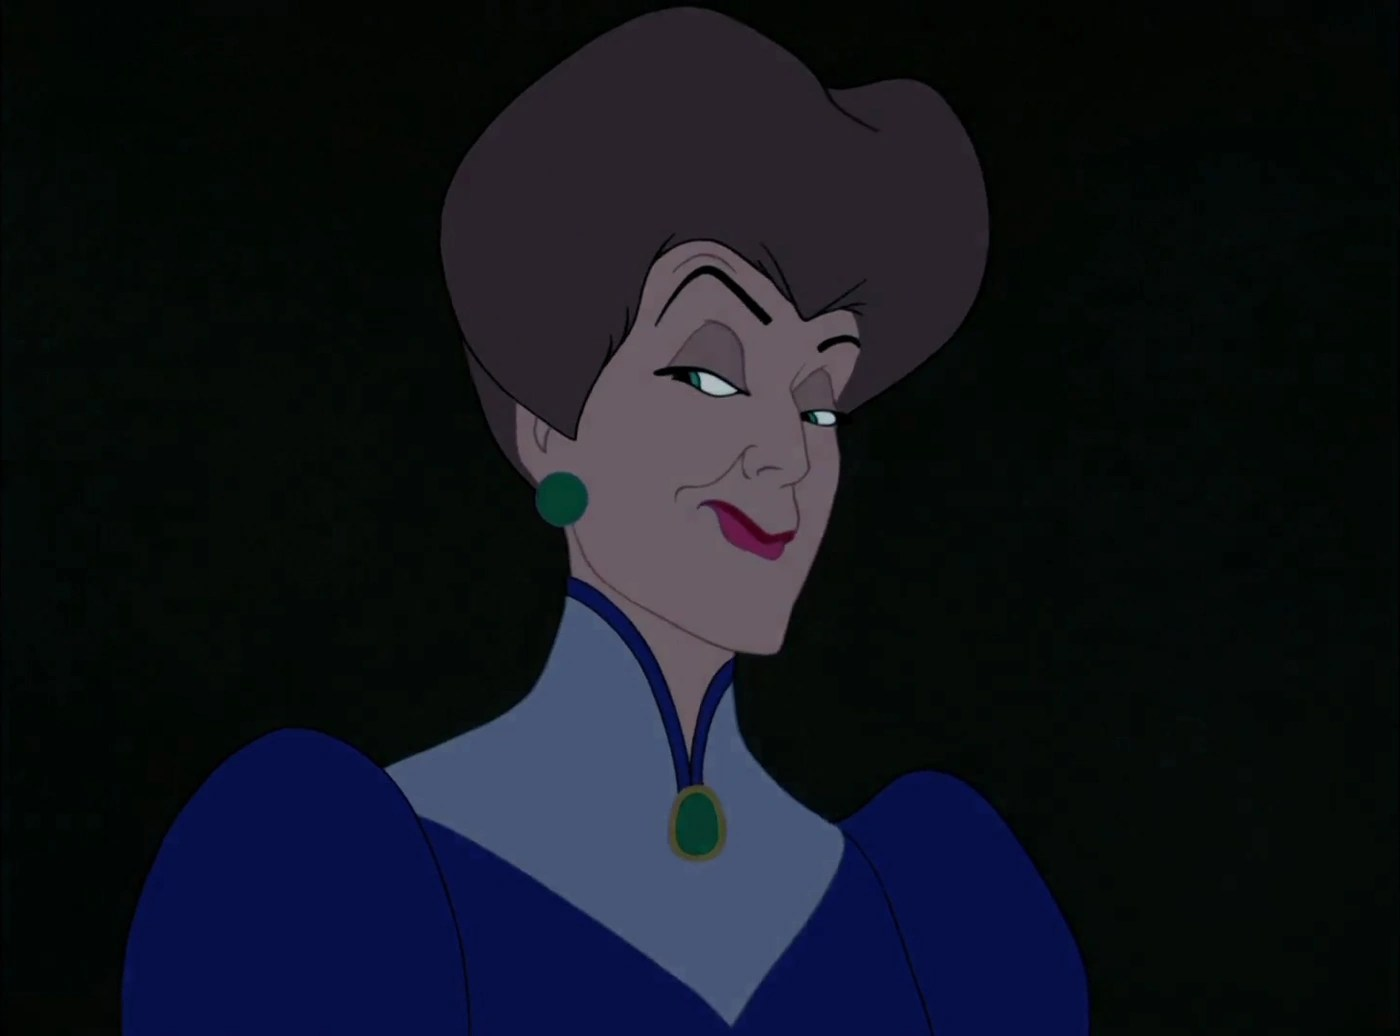 cinderellas stepmother not so evil after Later works by anna birgitta rooth, antti aarne and stith thompson produced   in an icelandic version, the evil stepmother is an ogress who cuts off her  of  natural selection that cinderella did not emerge as a tale of horror.